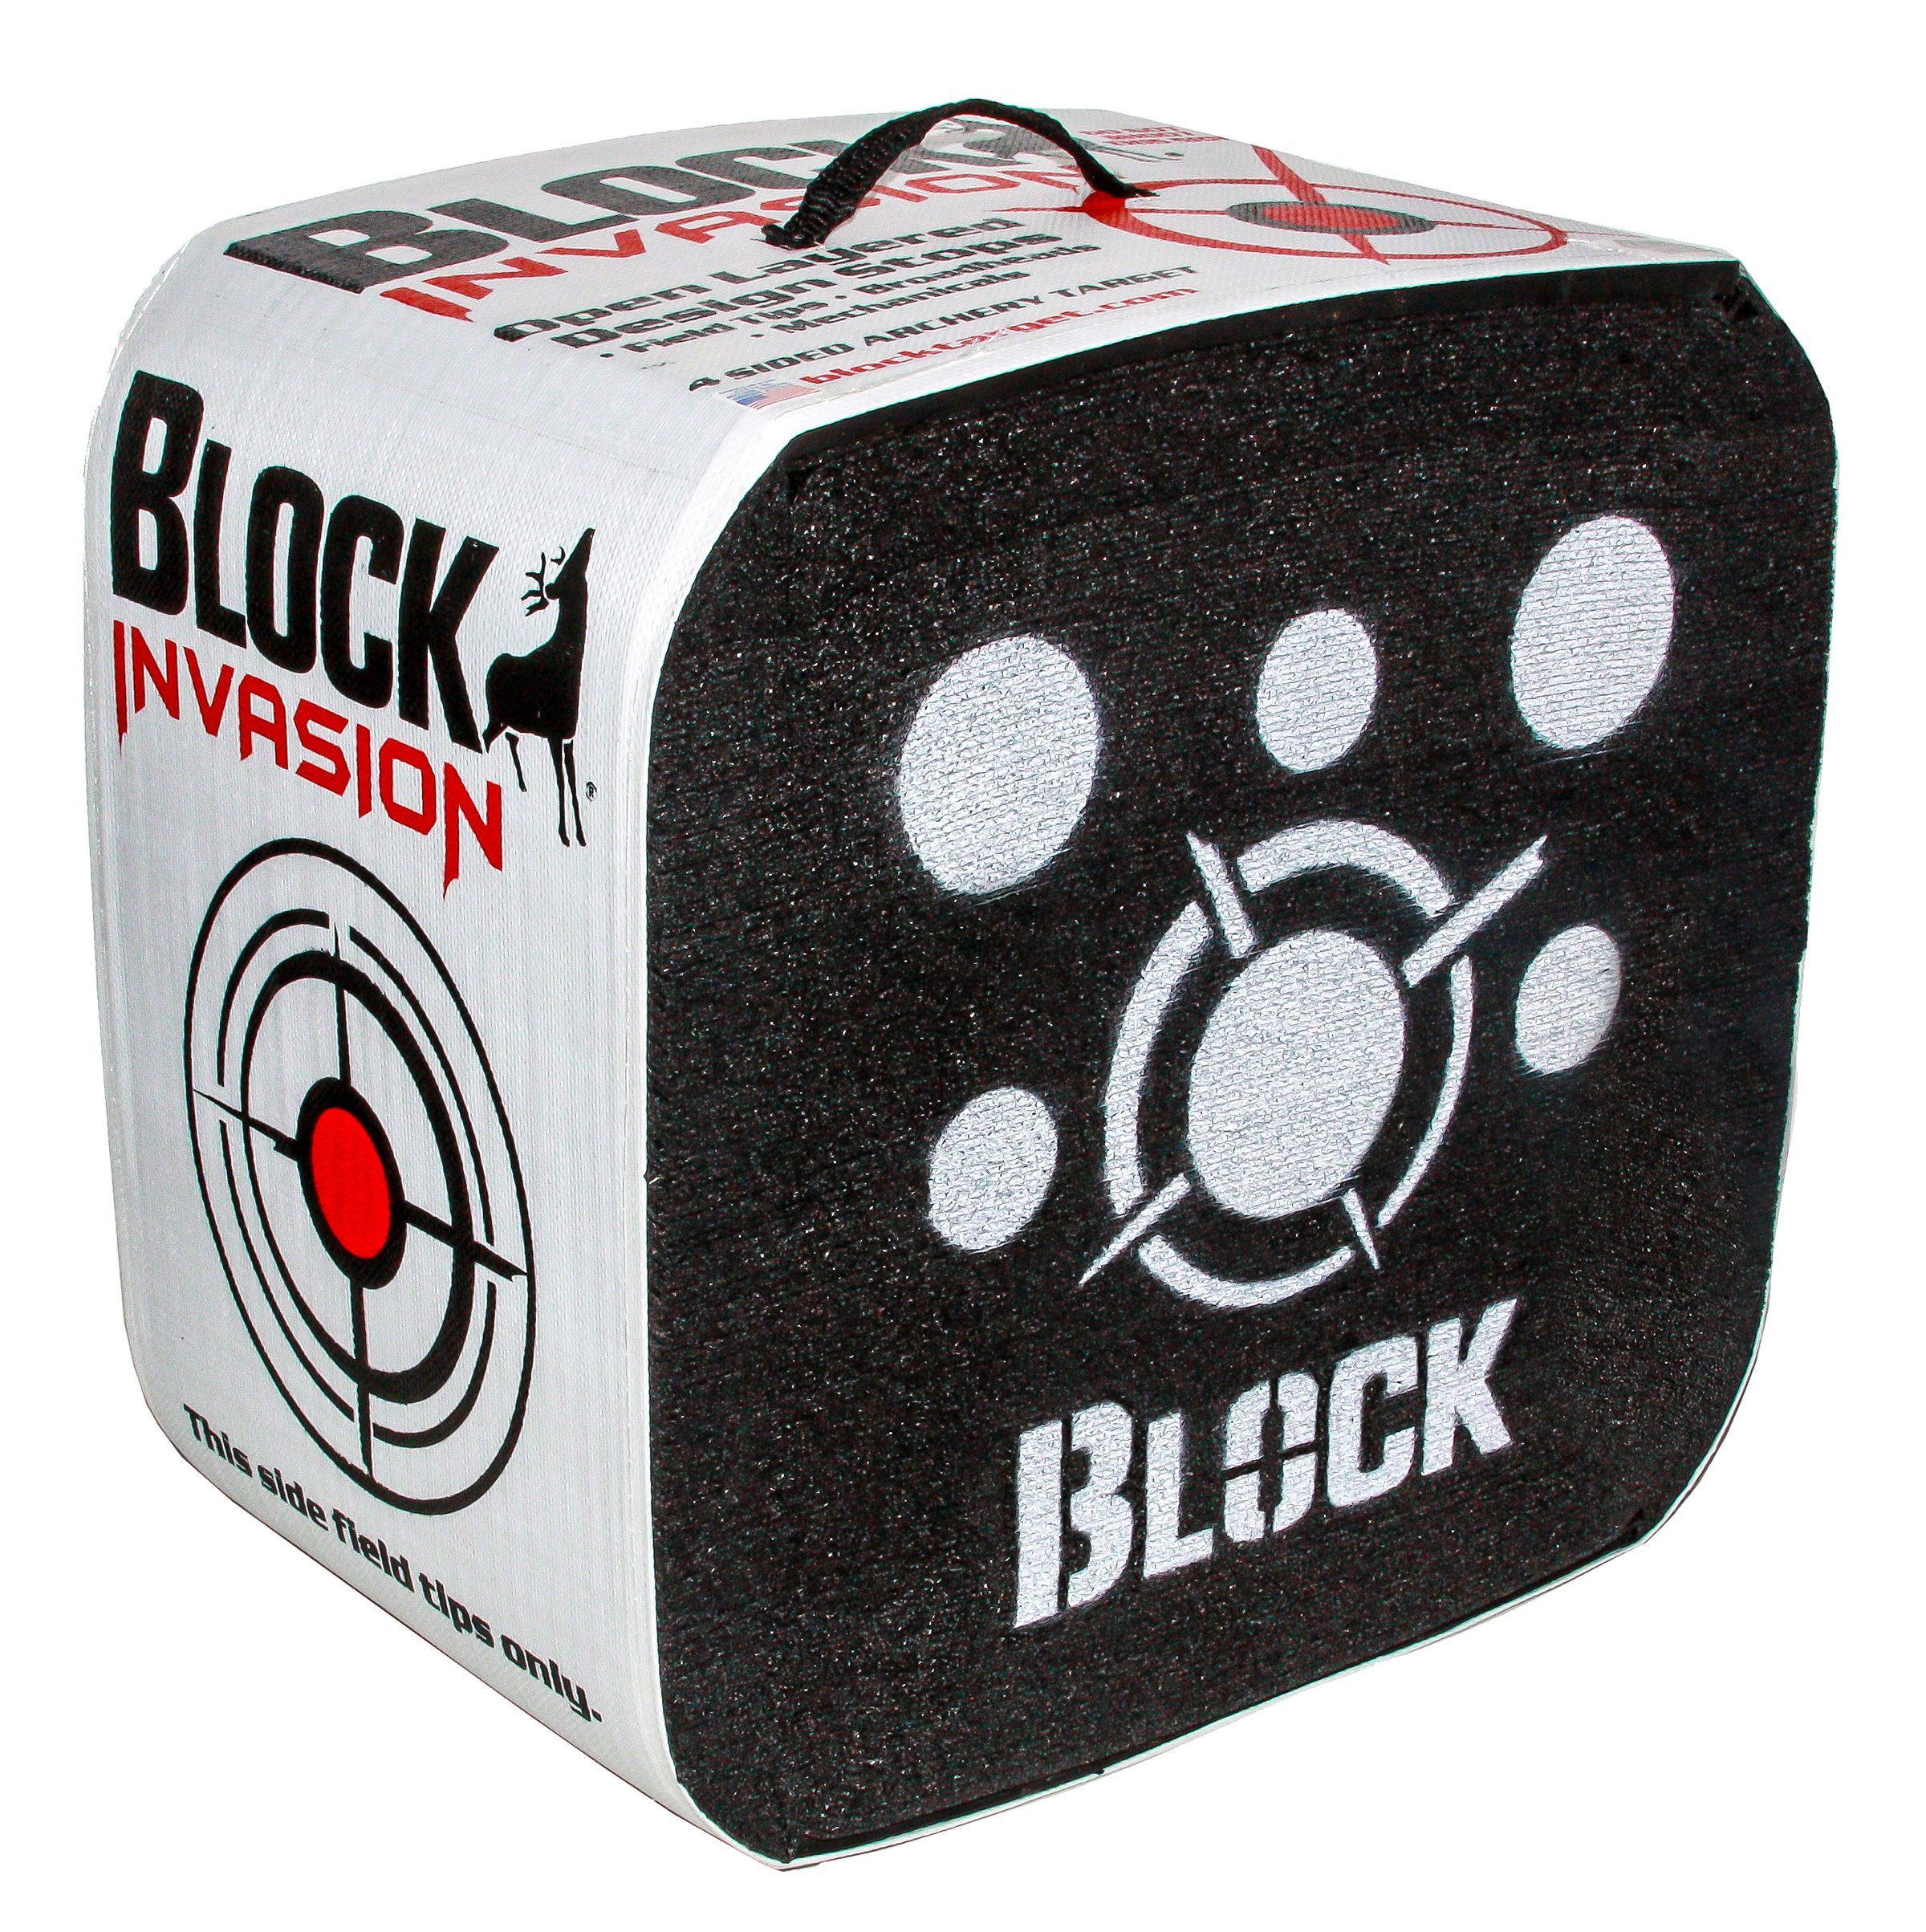 Block Invasion 4-Sided Archery Target - 16x16 inch